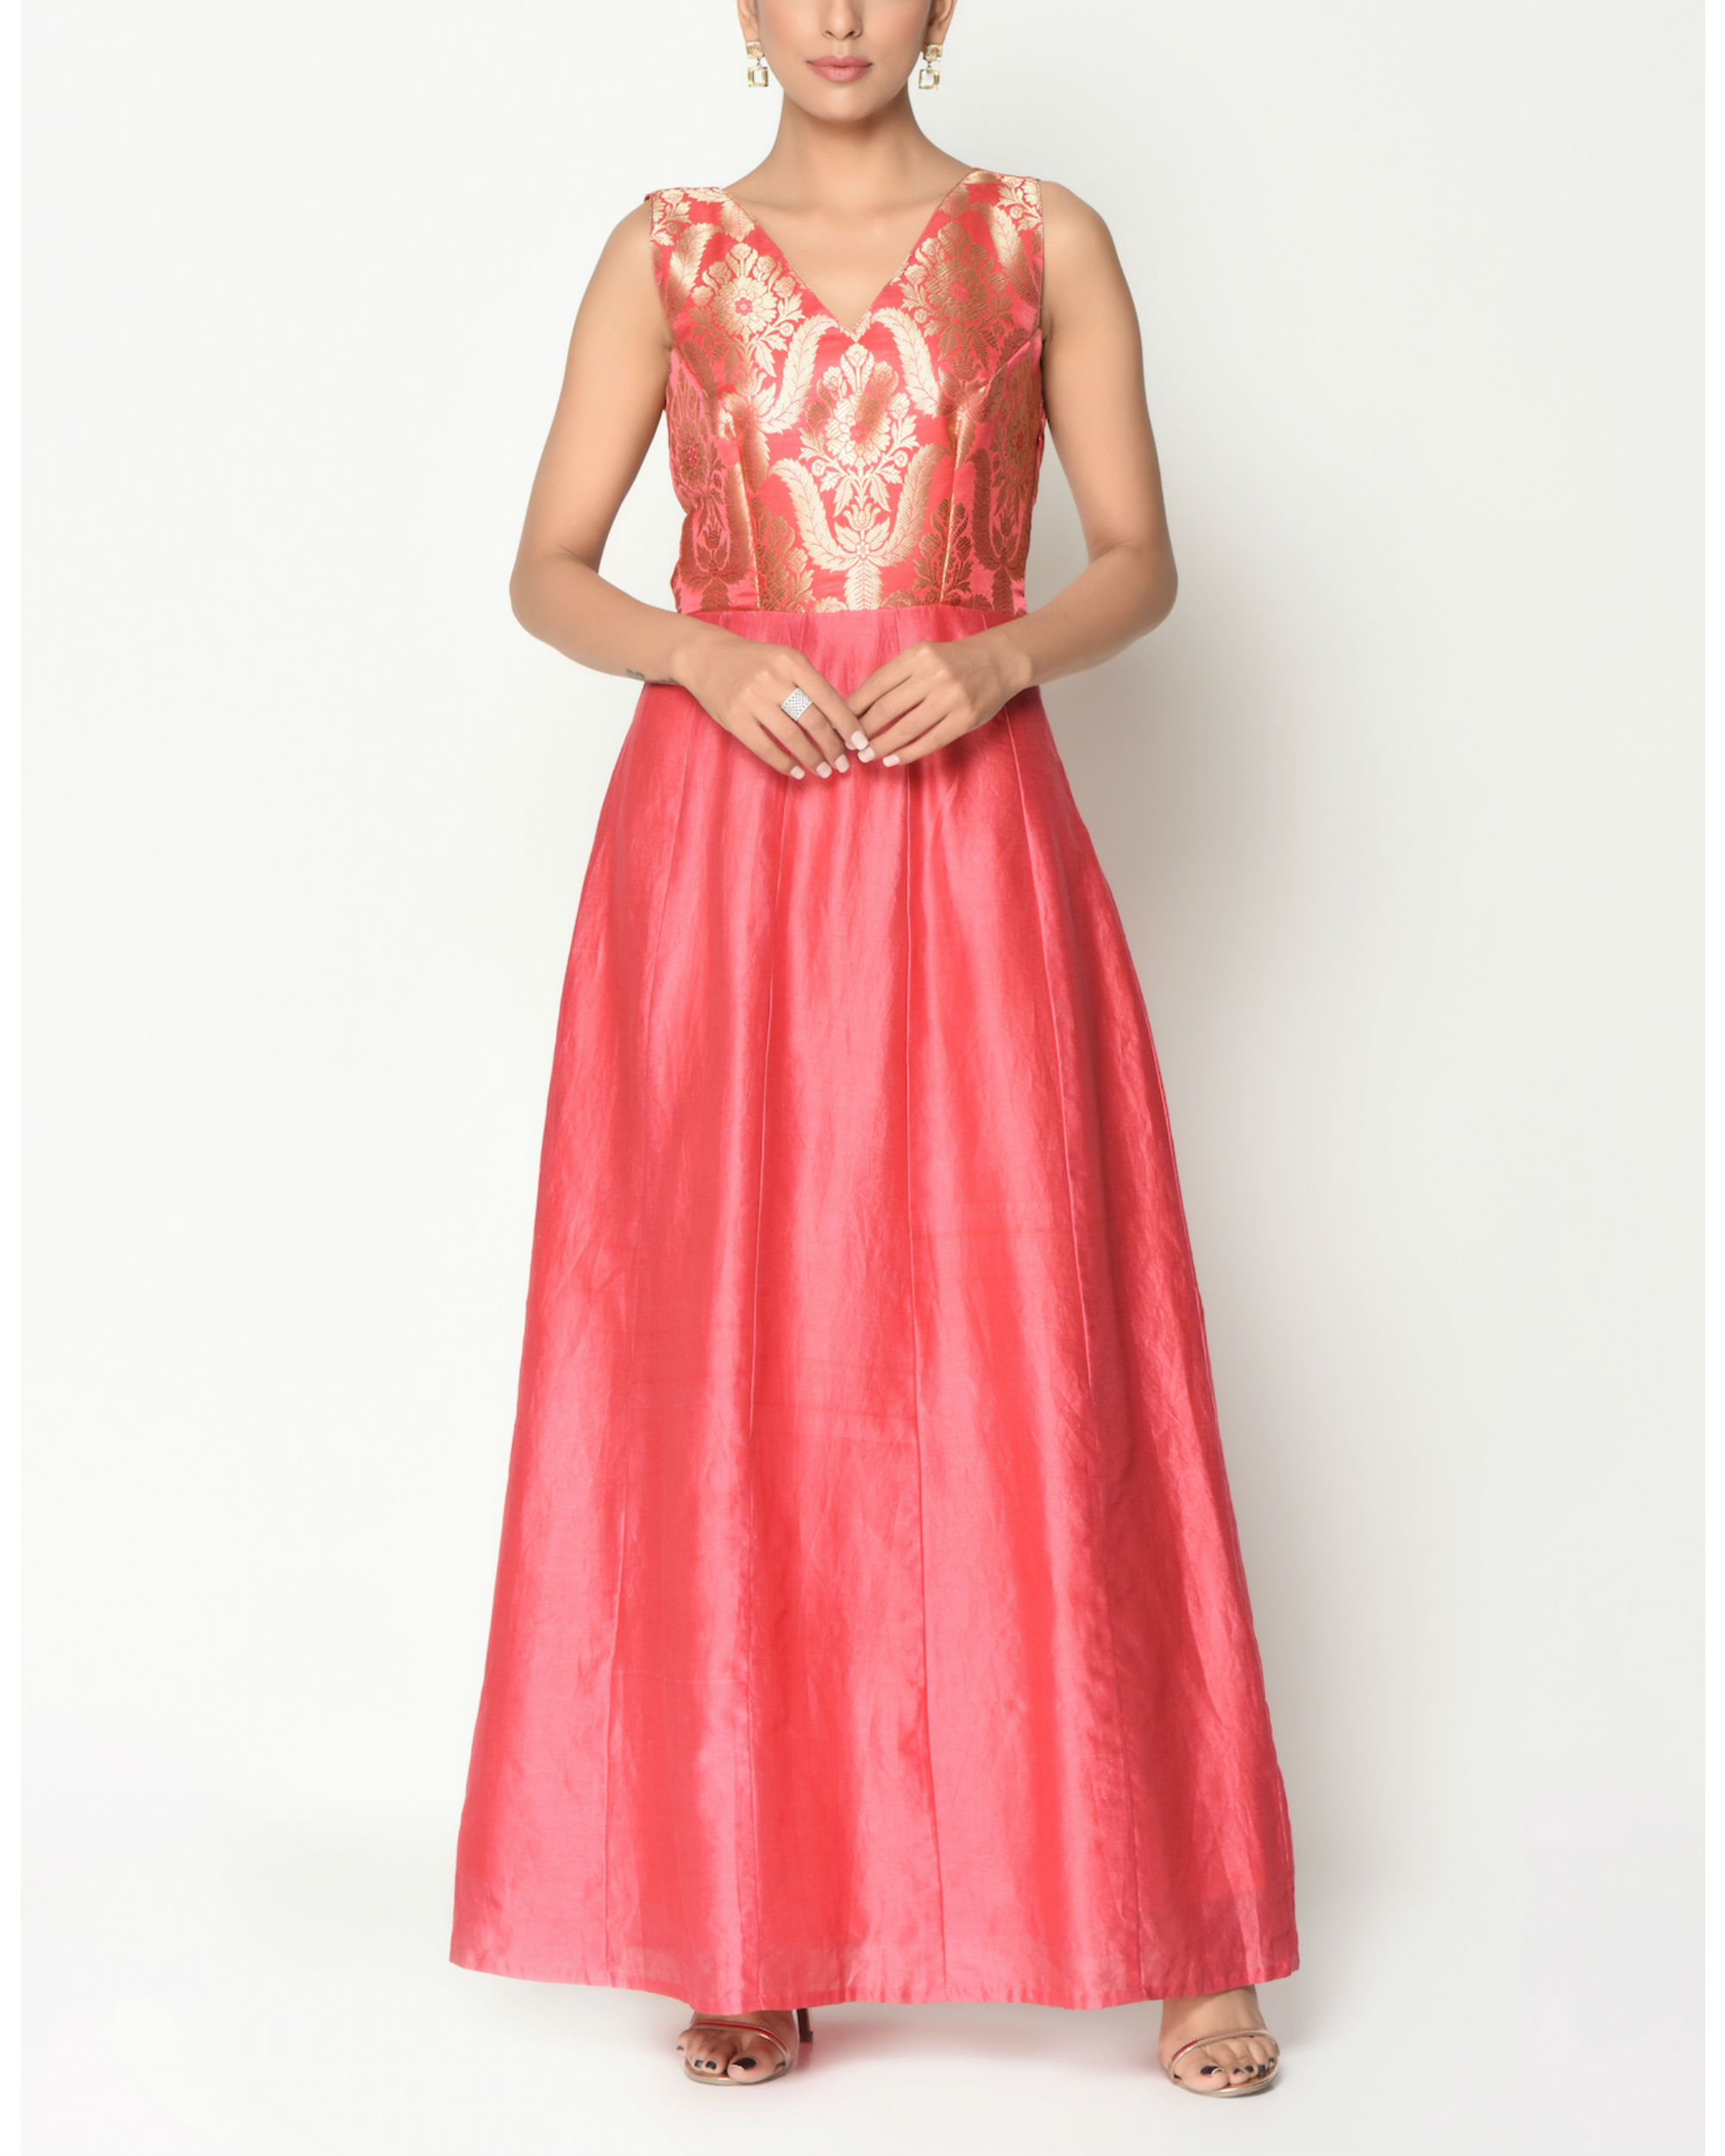 Coral brocade flare dress